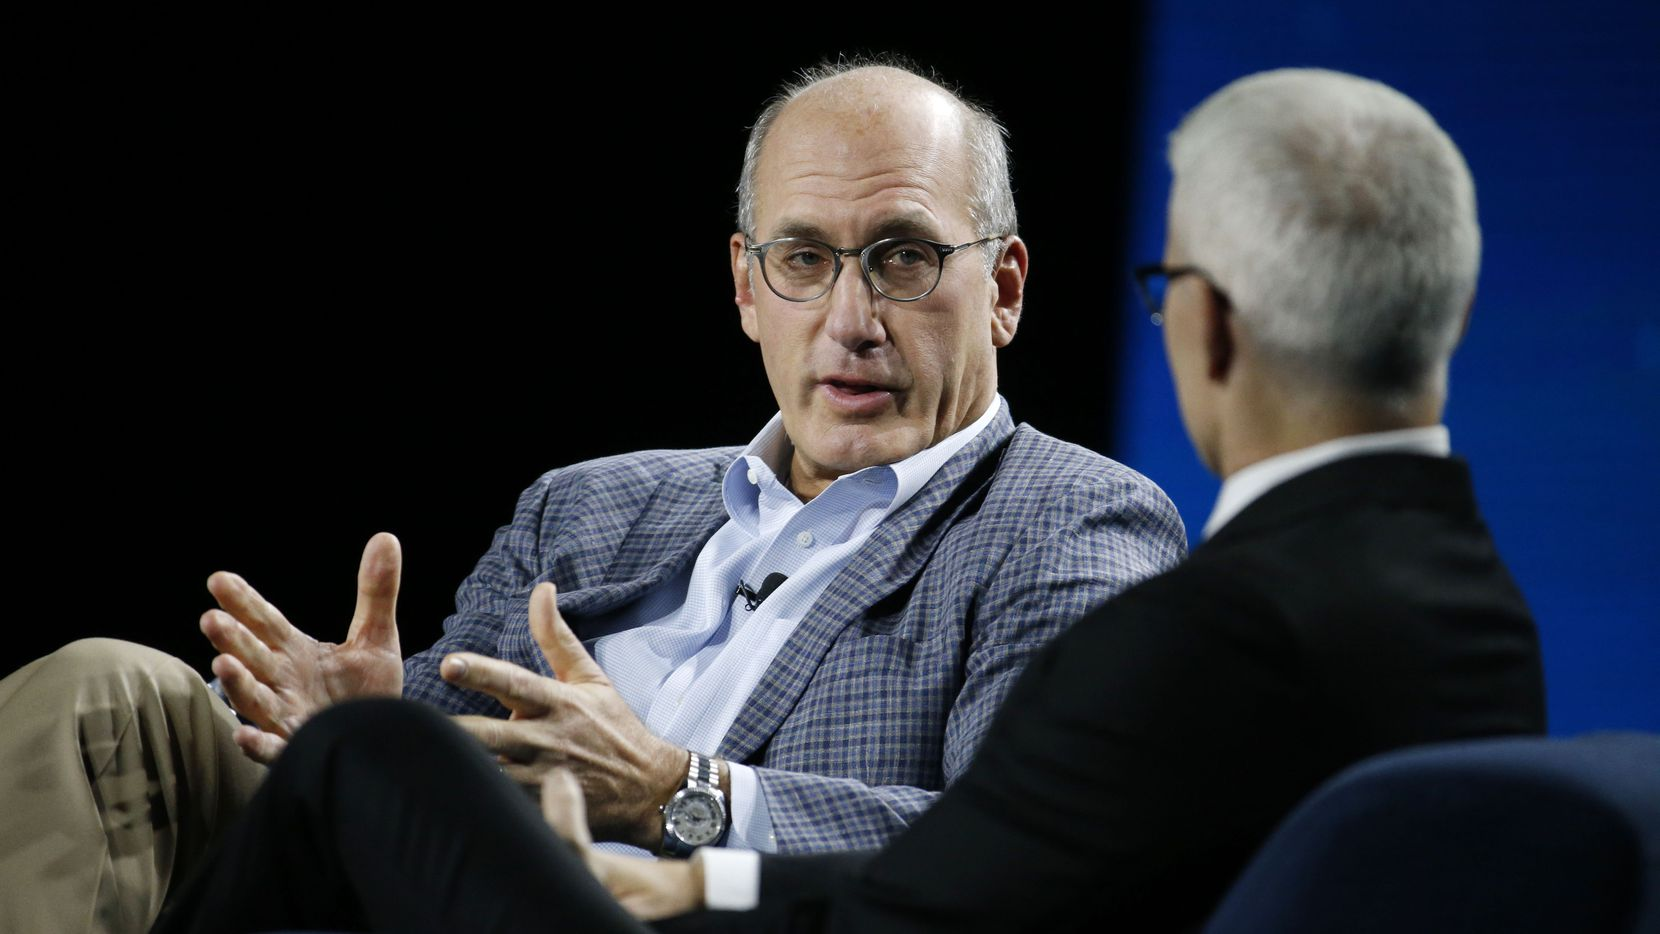 John Stankey is interviewed by Anderson Cooper during the AT&T Business Summit at Gaylord Texan Resort & Convention Center in Grapevine, Texas on Sept. 27, 2018.